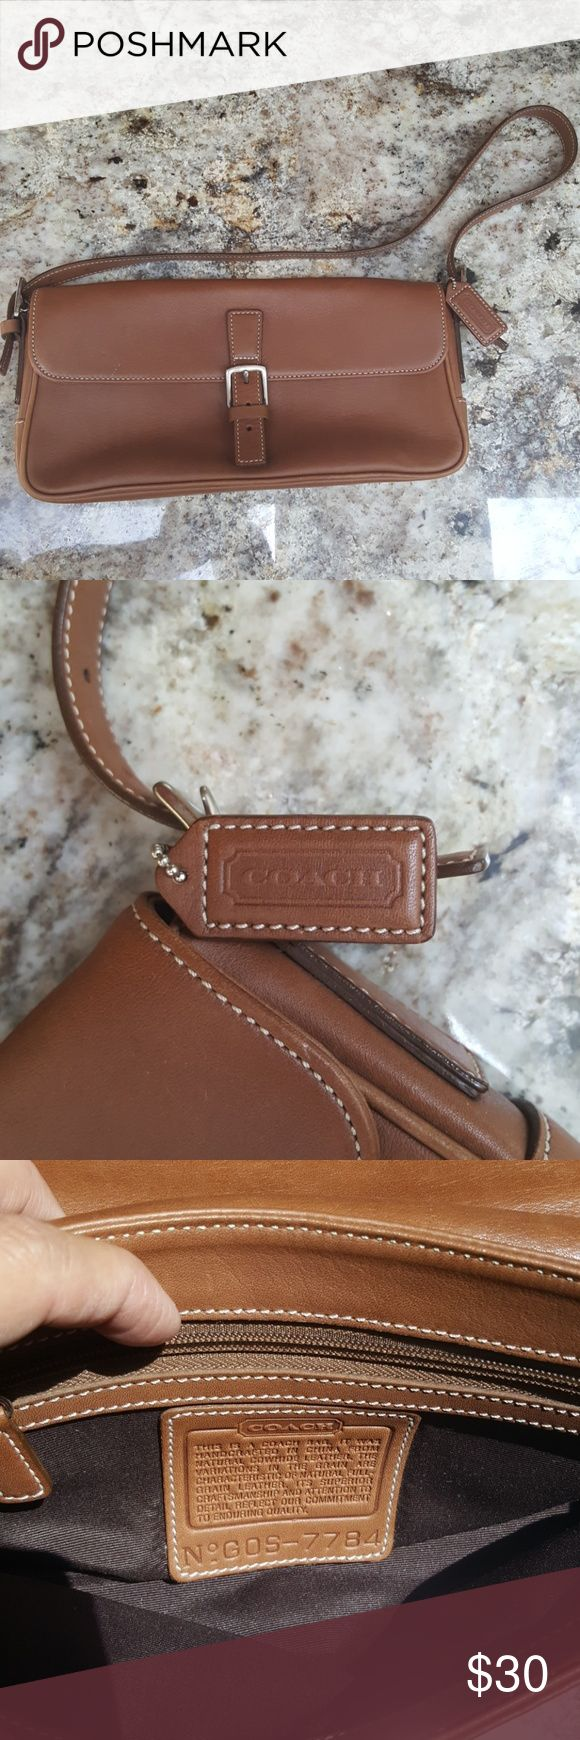 Purse Gently used camel clutch with strap like new all leather. Coach Bags Mini Bags